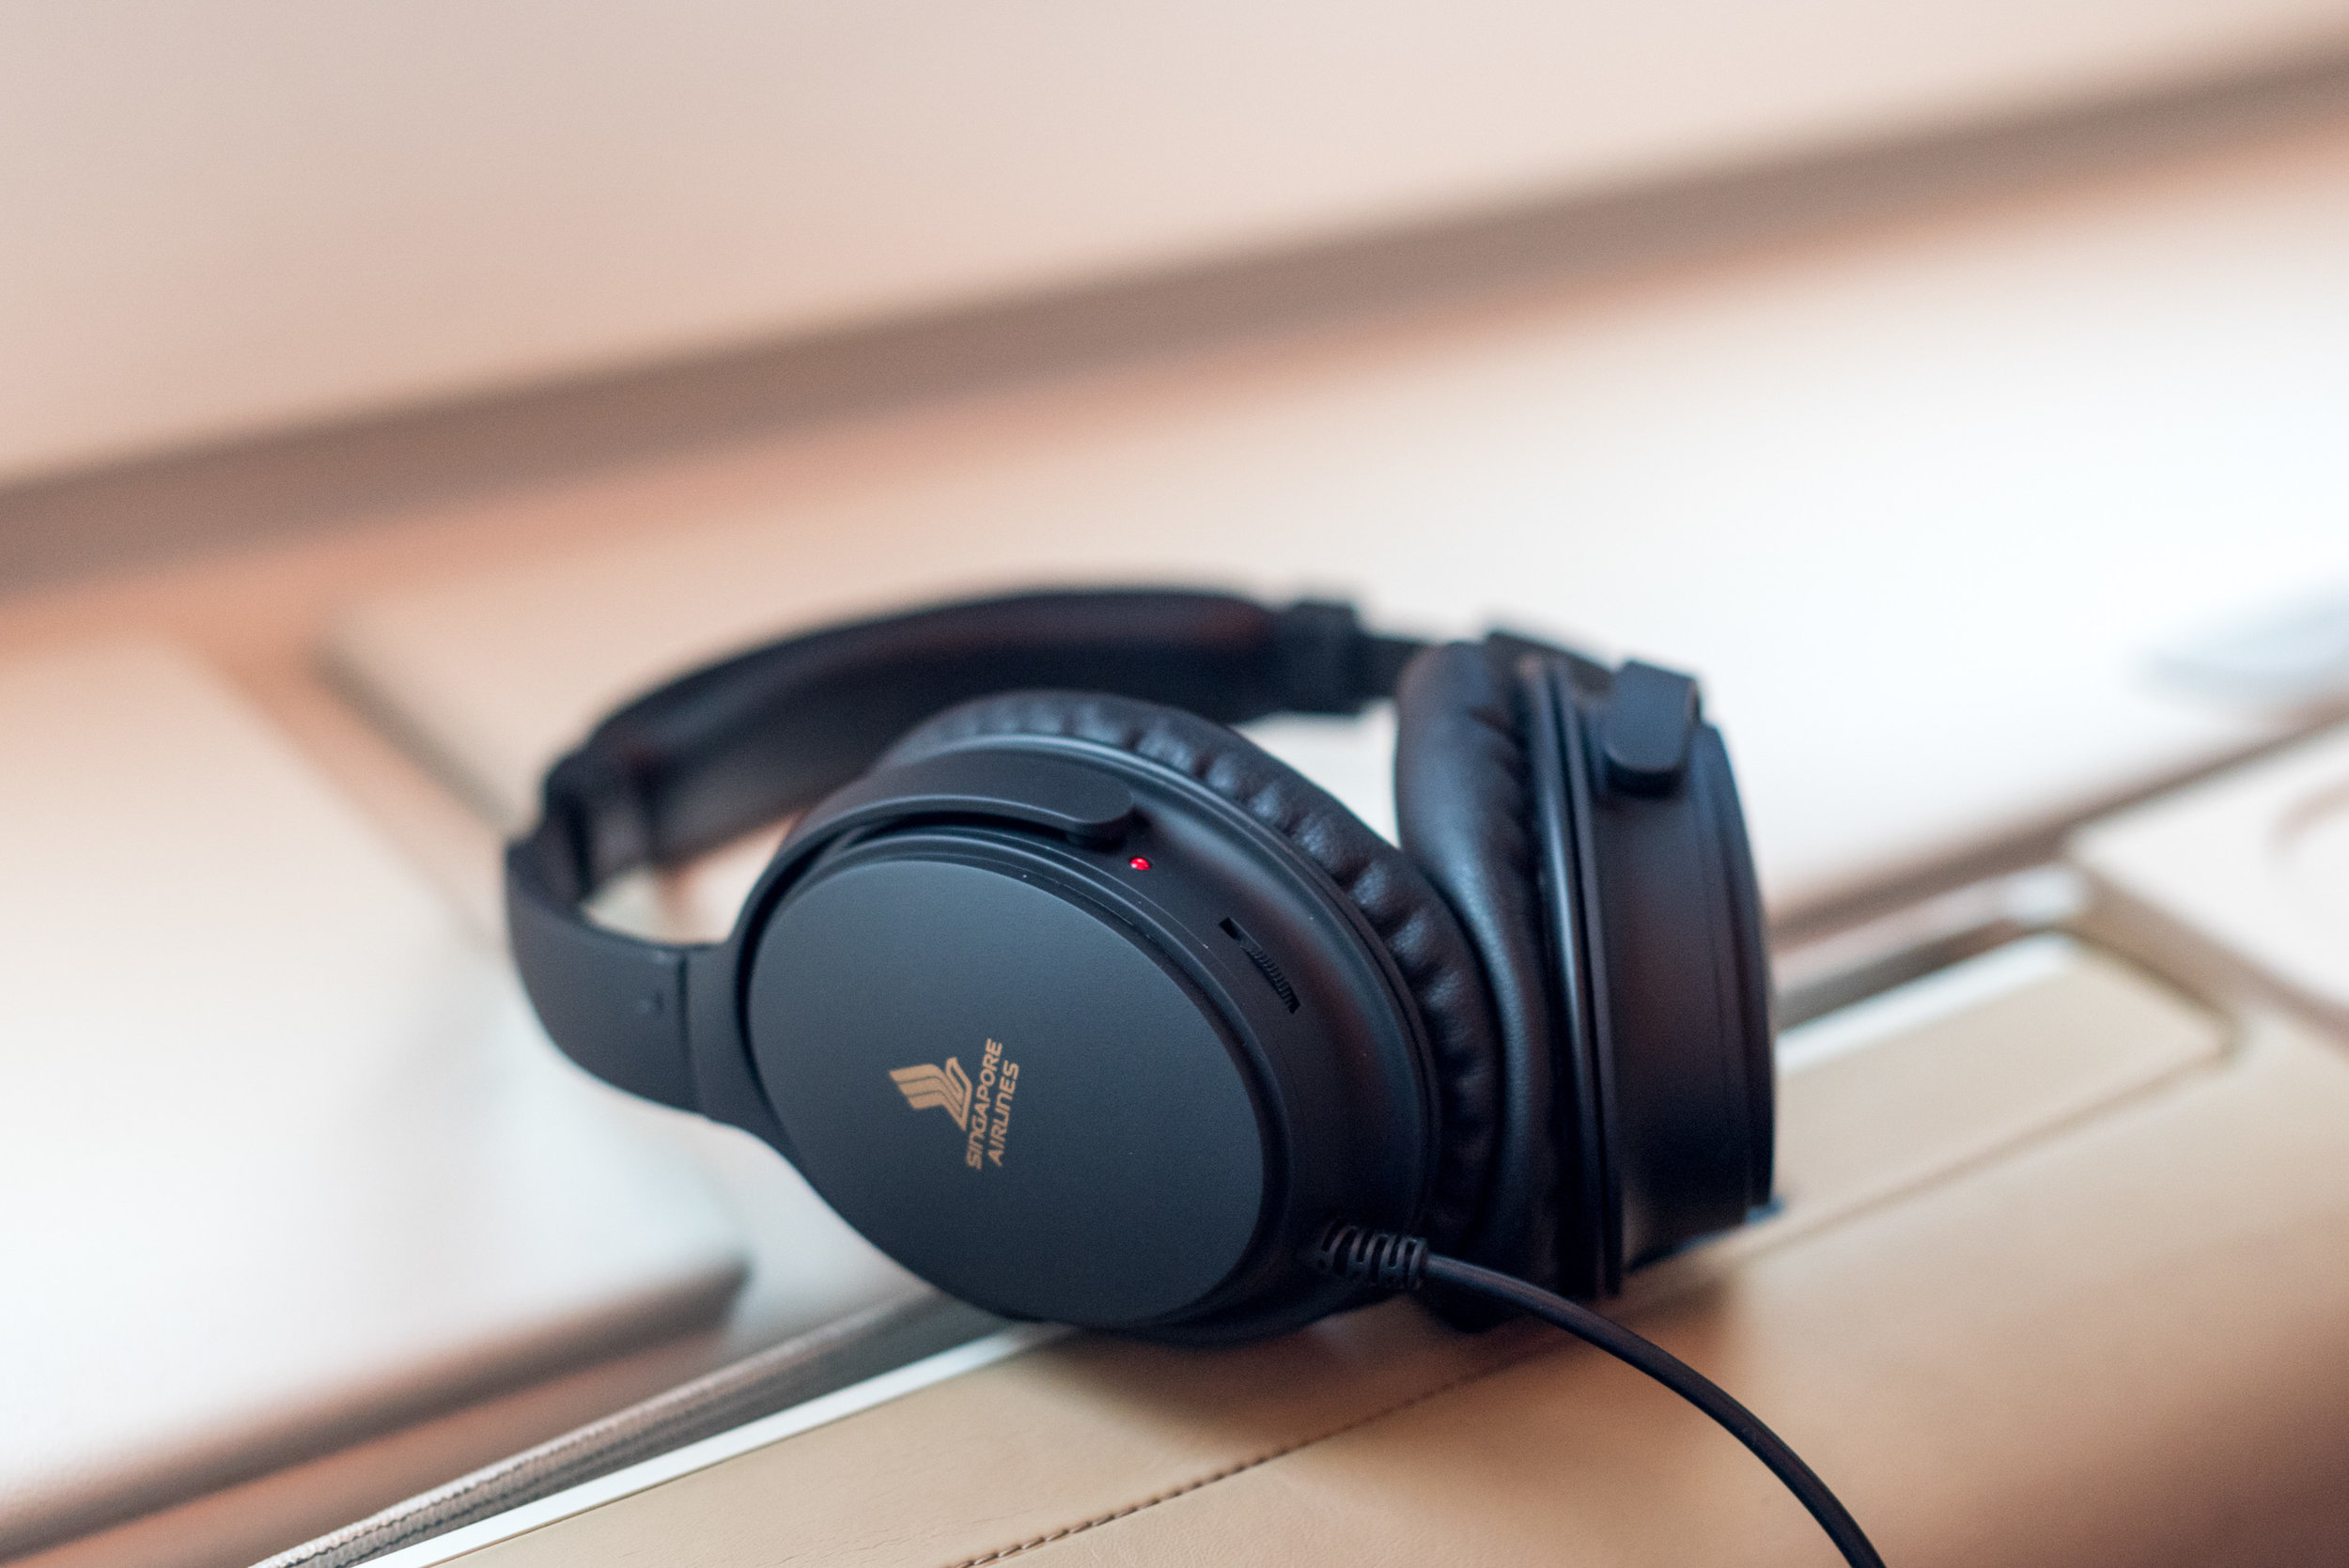 New Headphones on Business Class  Singapore Airlines SQ802 Business - SIN to PEK